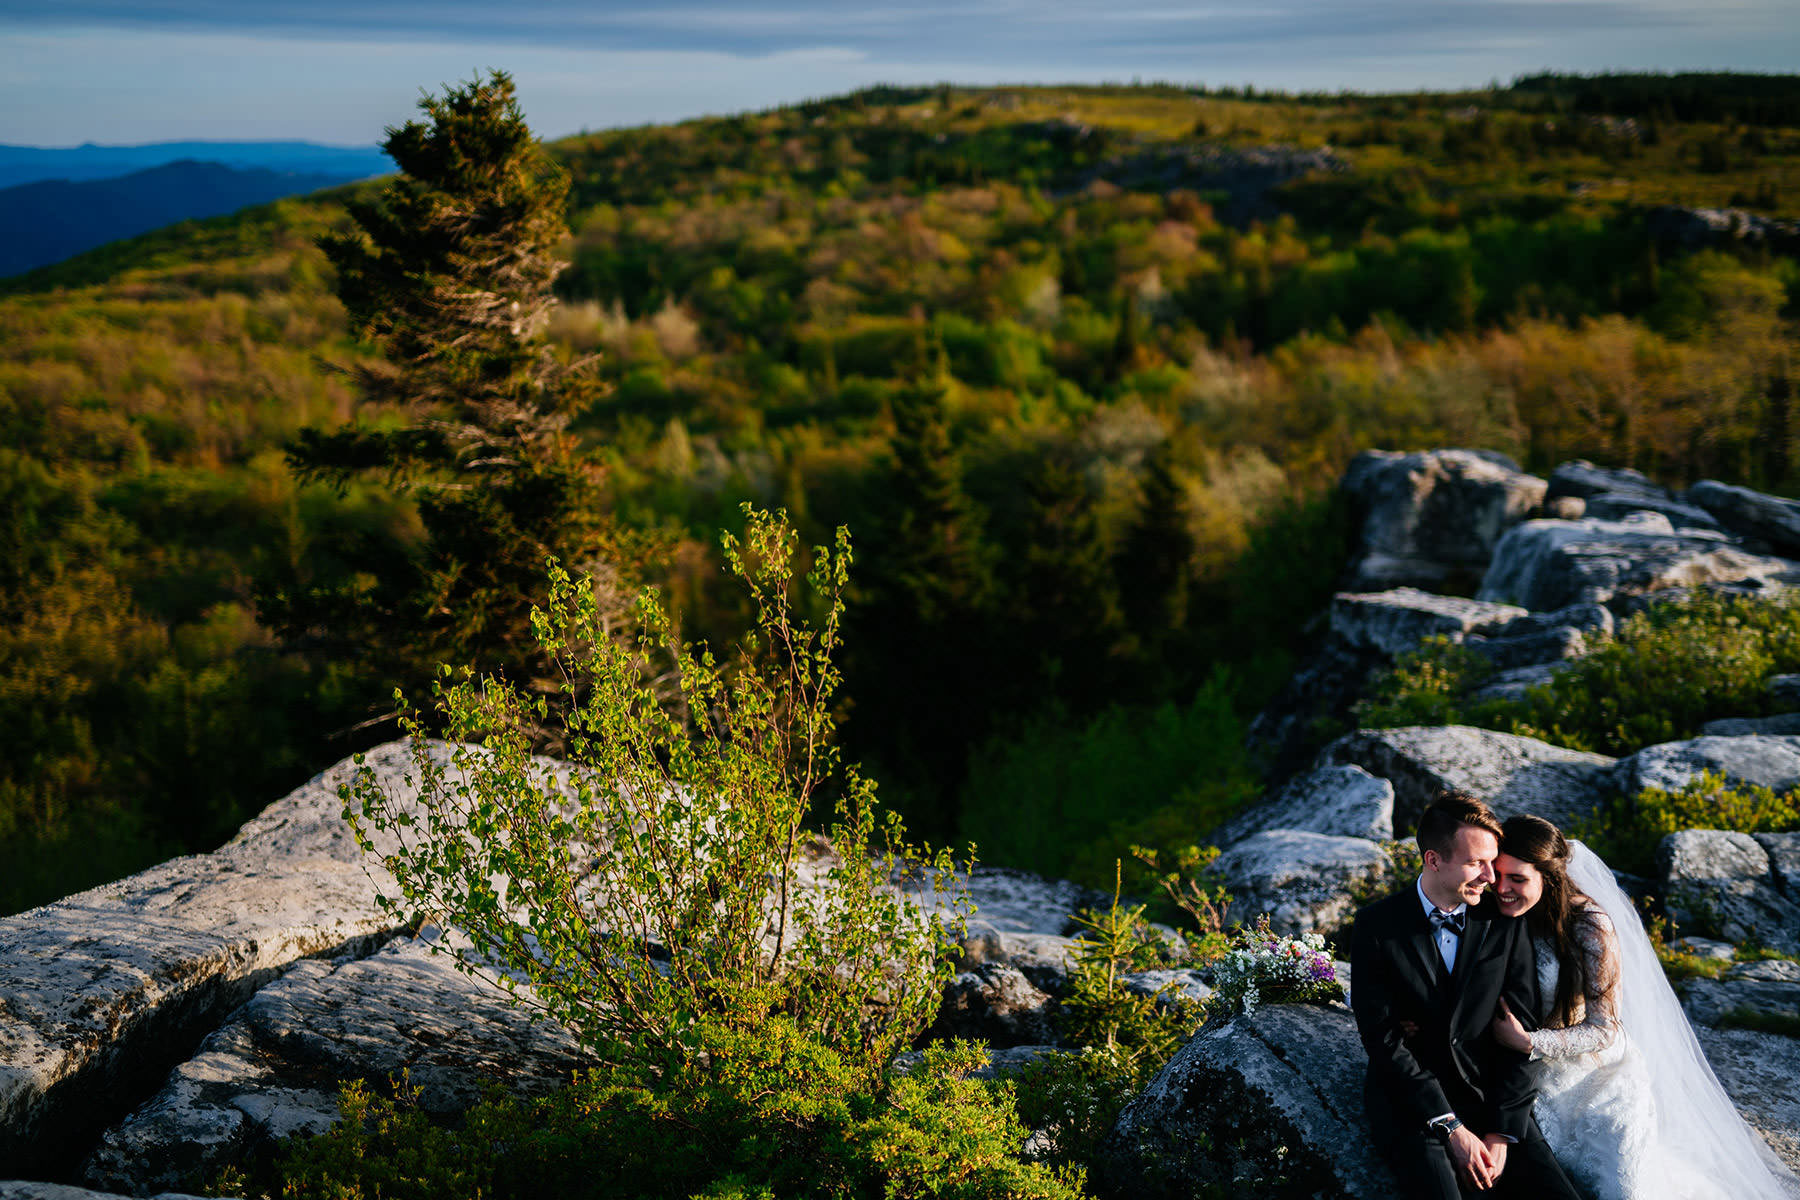 couple eloping at dolly sods wv